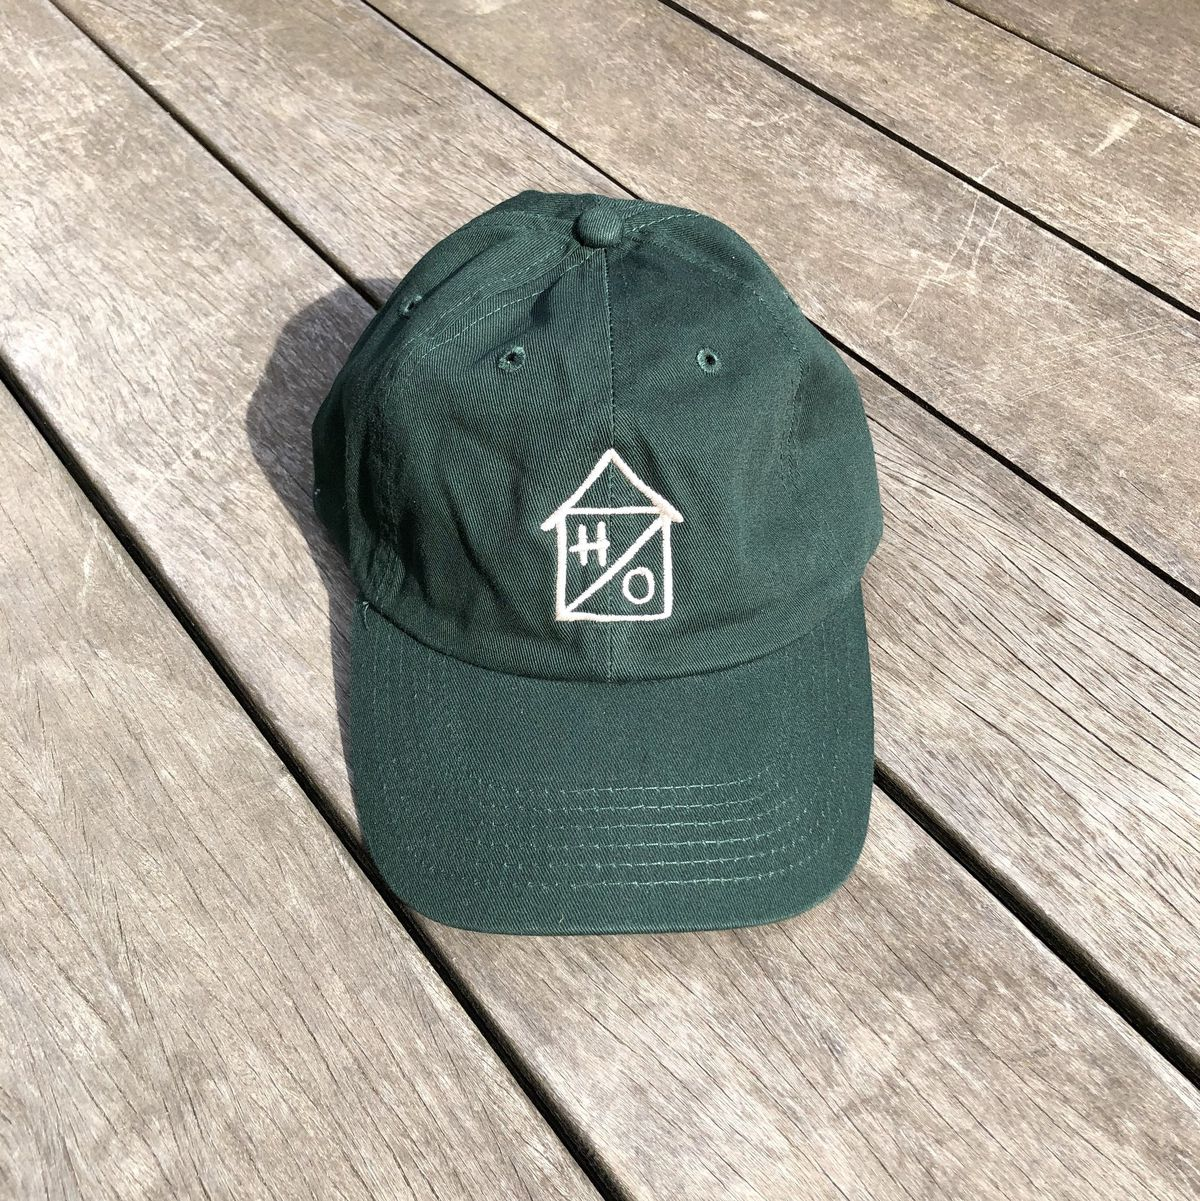 A green baseball-style hat with a tan Hideout logo stitched on the front.